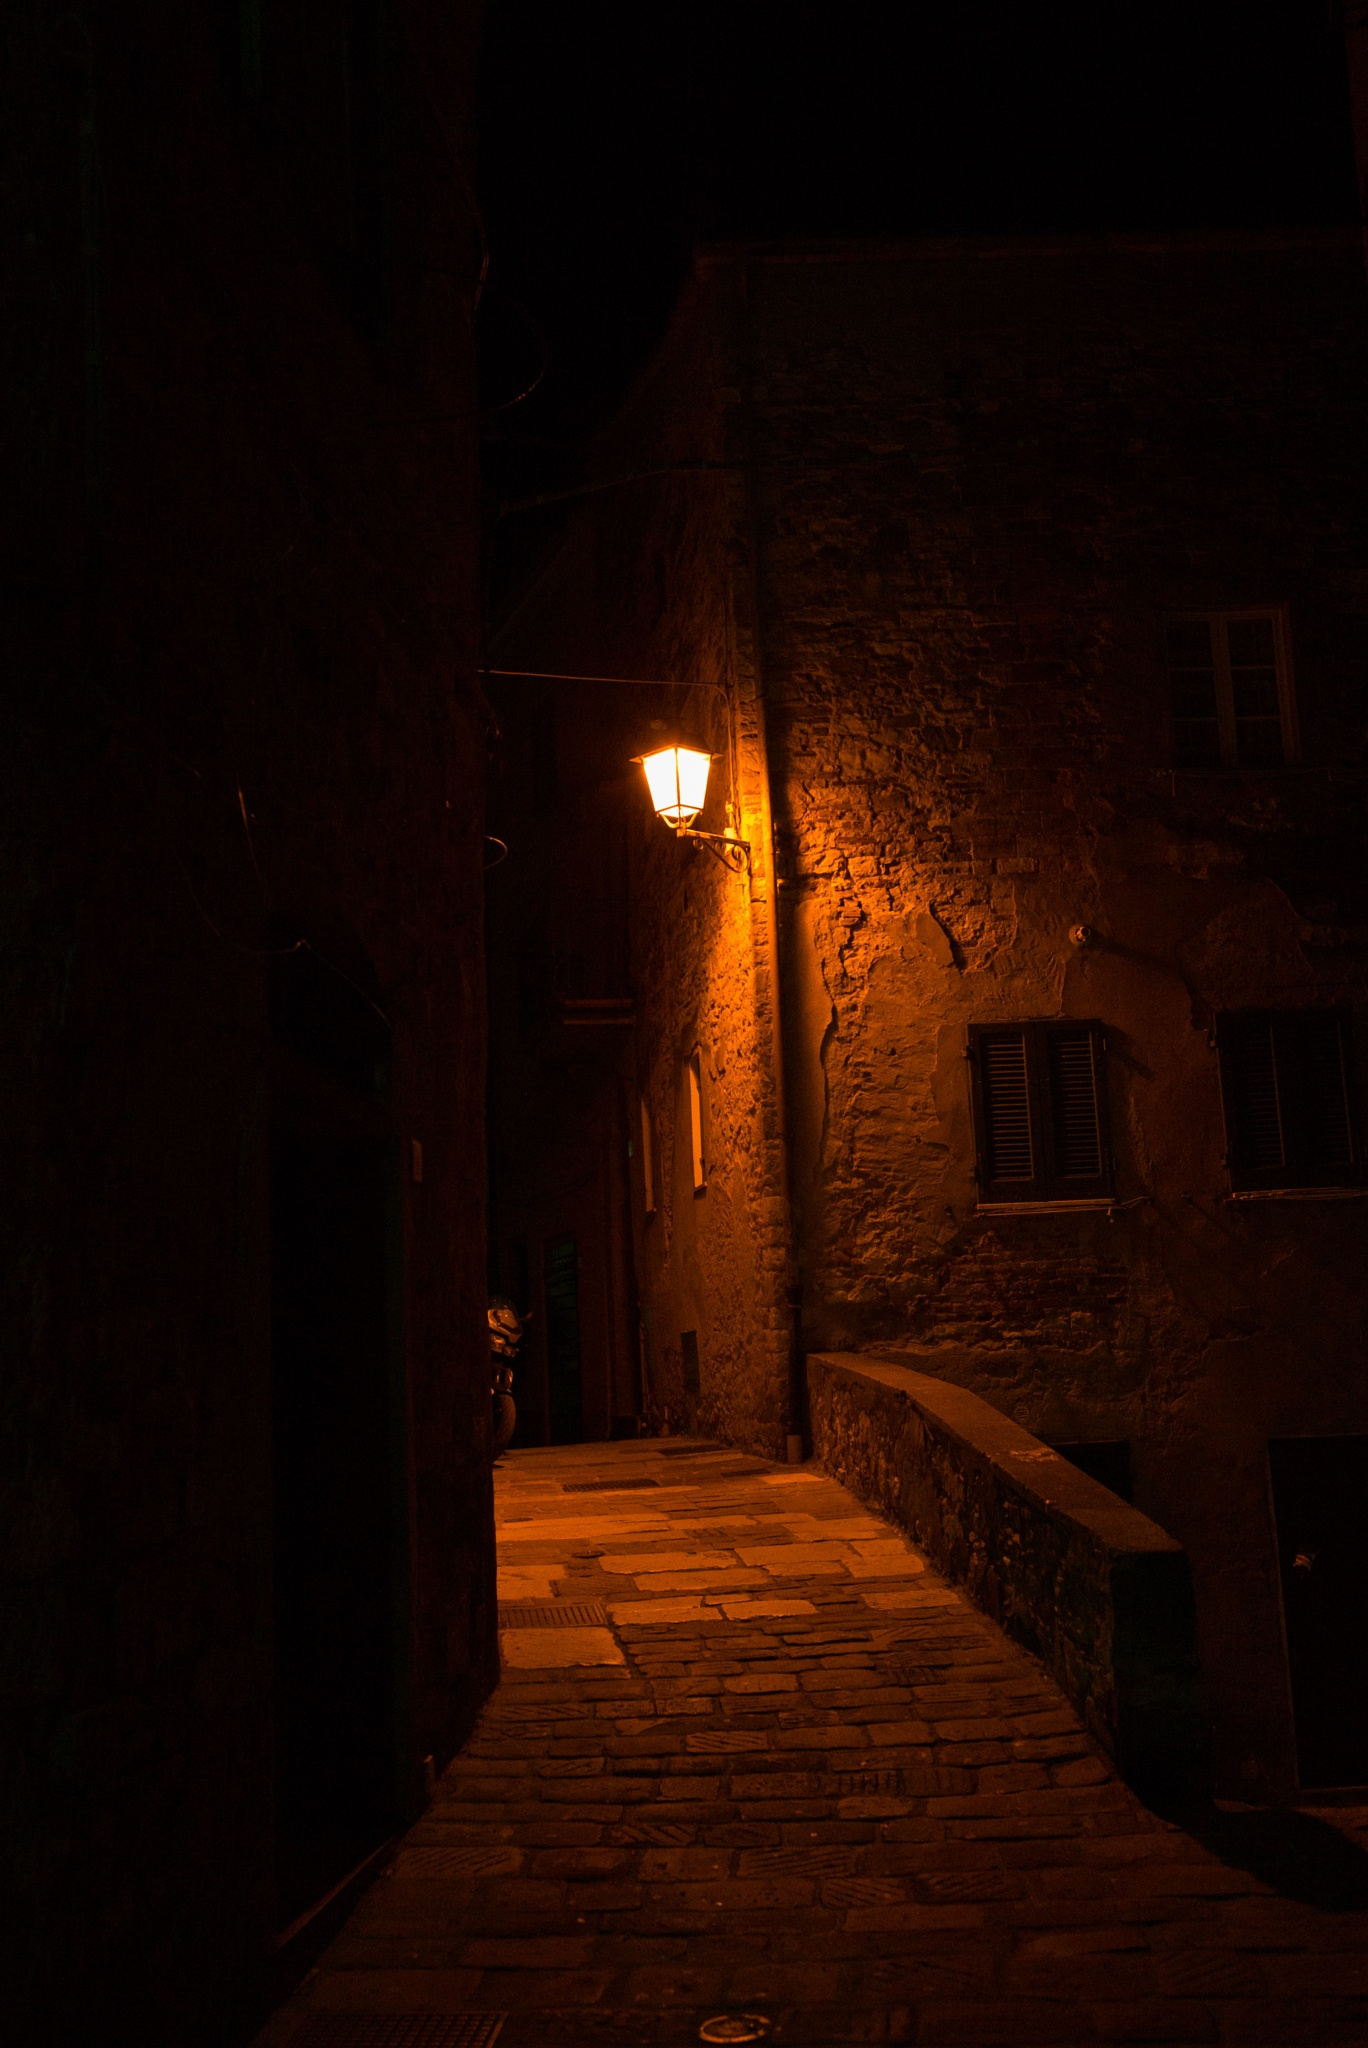 Village alley at night by giorgiomorrone